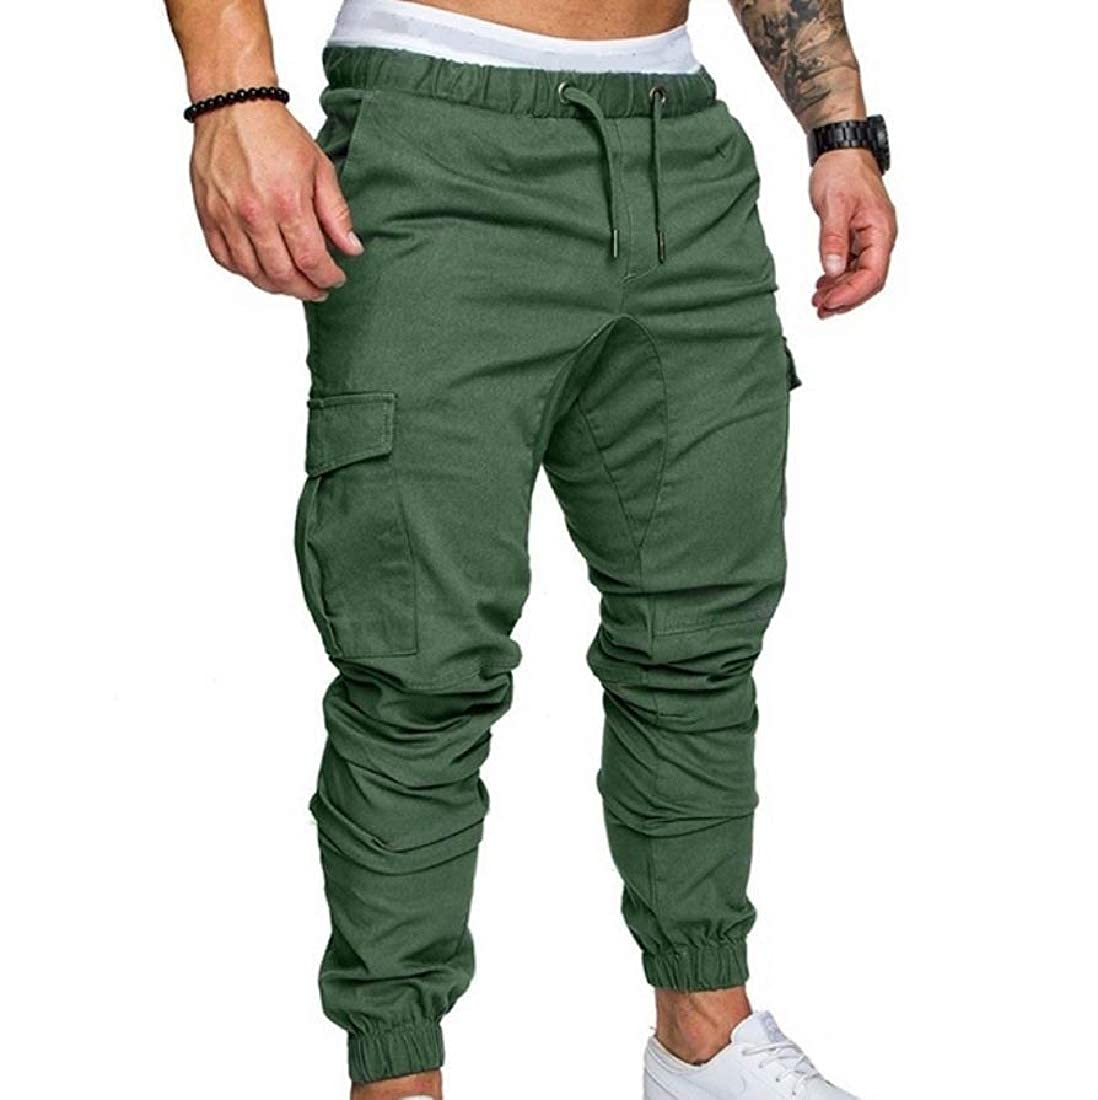 YUNY Mens Leisure Plus-Size Cargo Harem Comfortable Fit Jogger Pants Army Green S